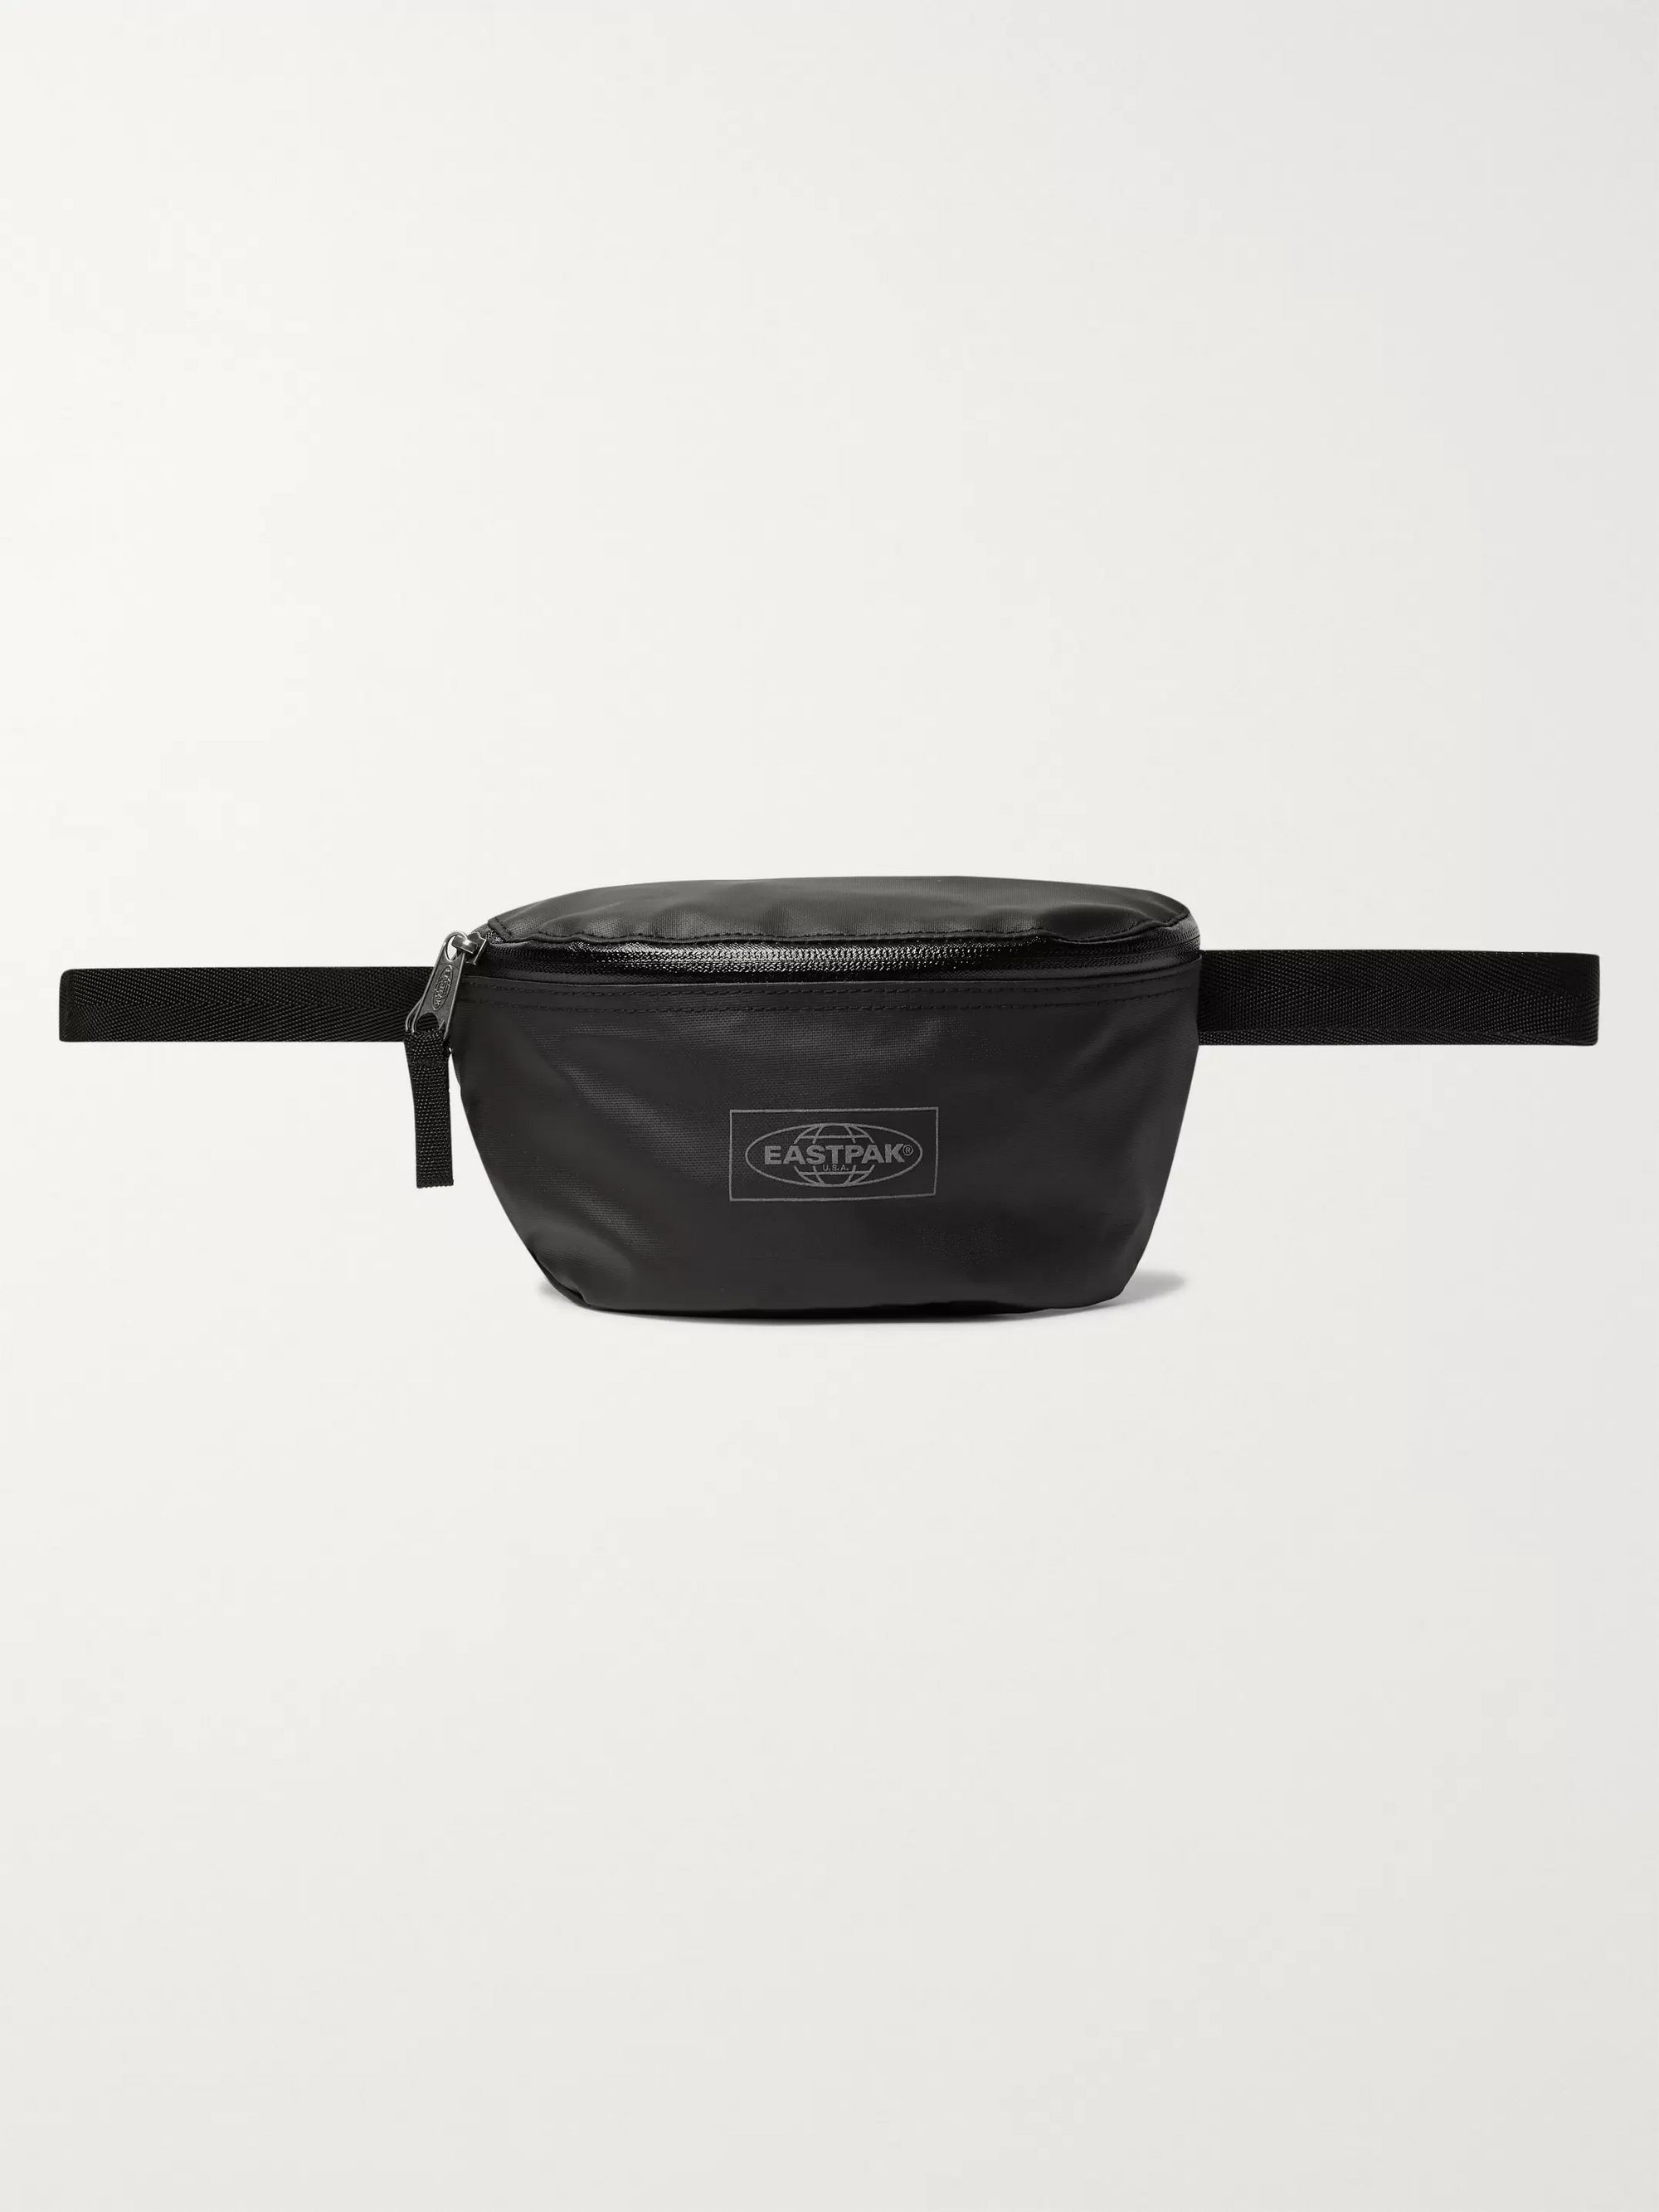 Eastpak Springer Leather-Trimmed Ballistic Nylon Belt Bag